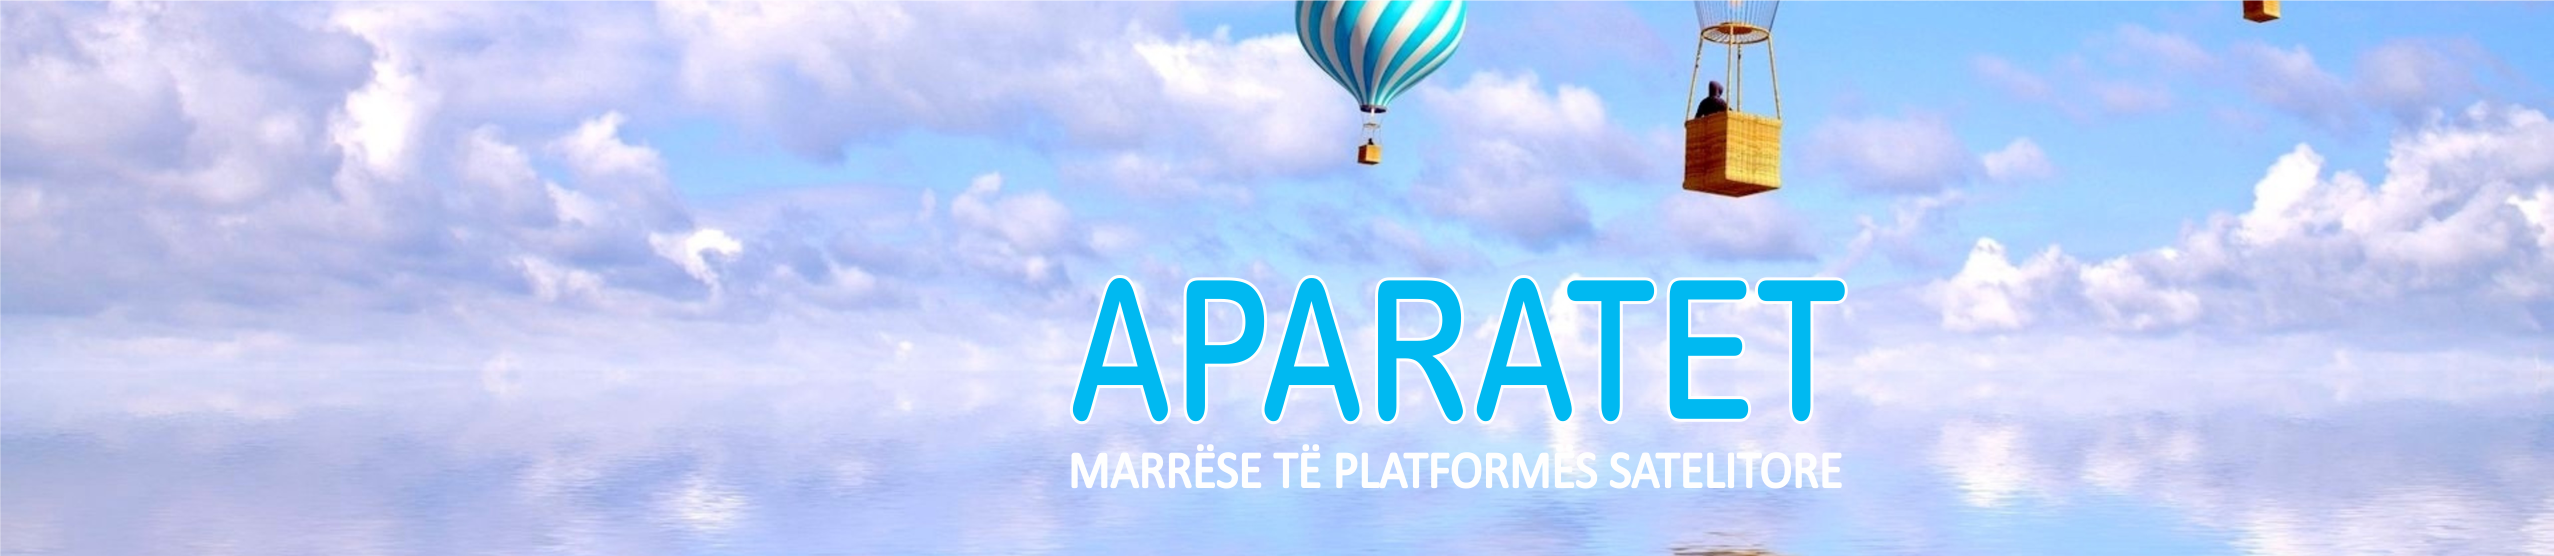 Aparatet-marrese-satelitore-baner